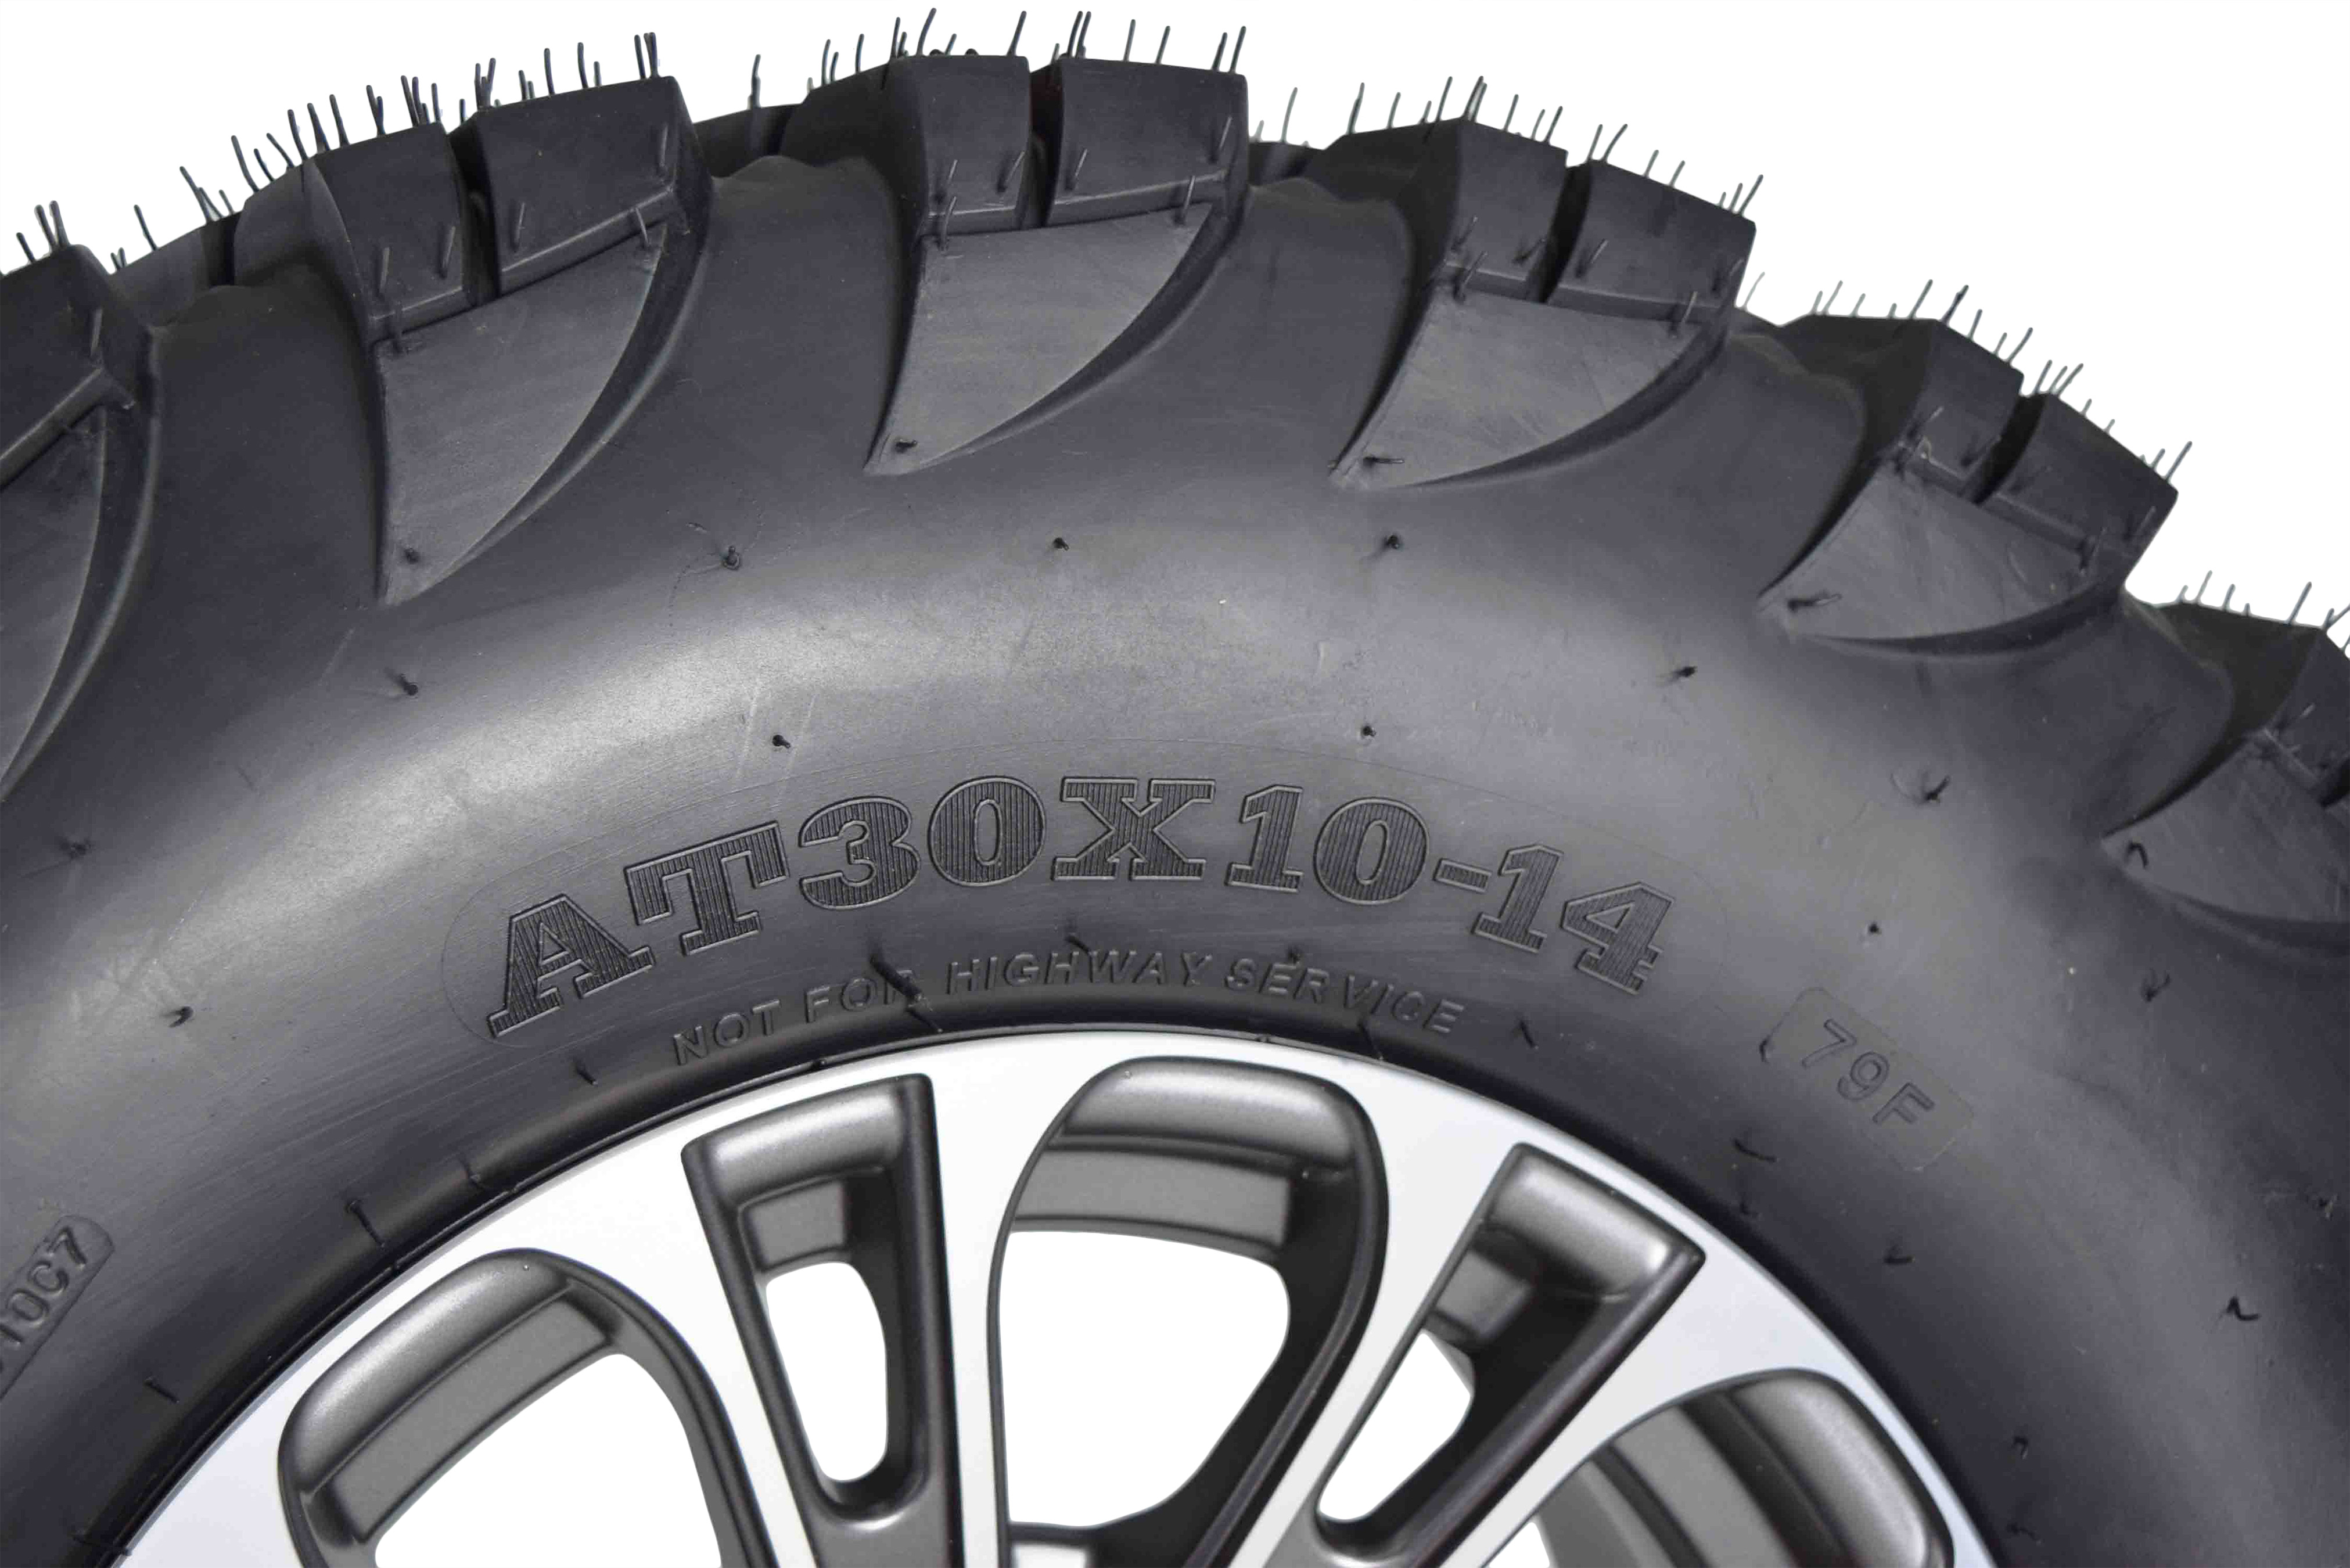 MASSFX-VY-30x10-14-Tire-w-Gunmetal-14x7-4-156-Rims-Wheel-Tire-Kit-with-Spare-image-5